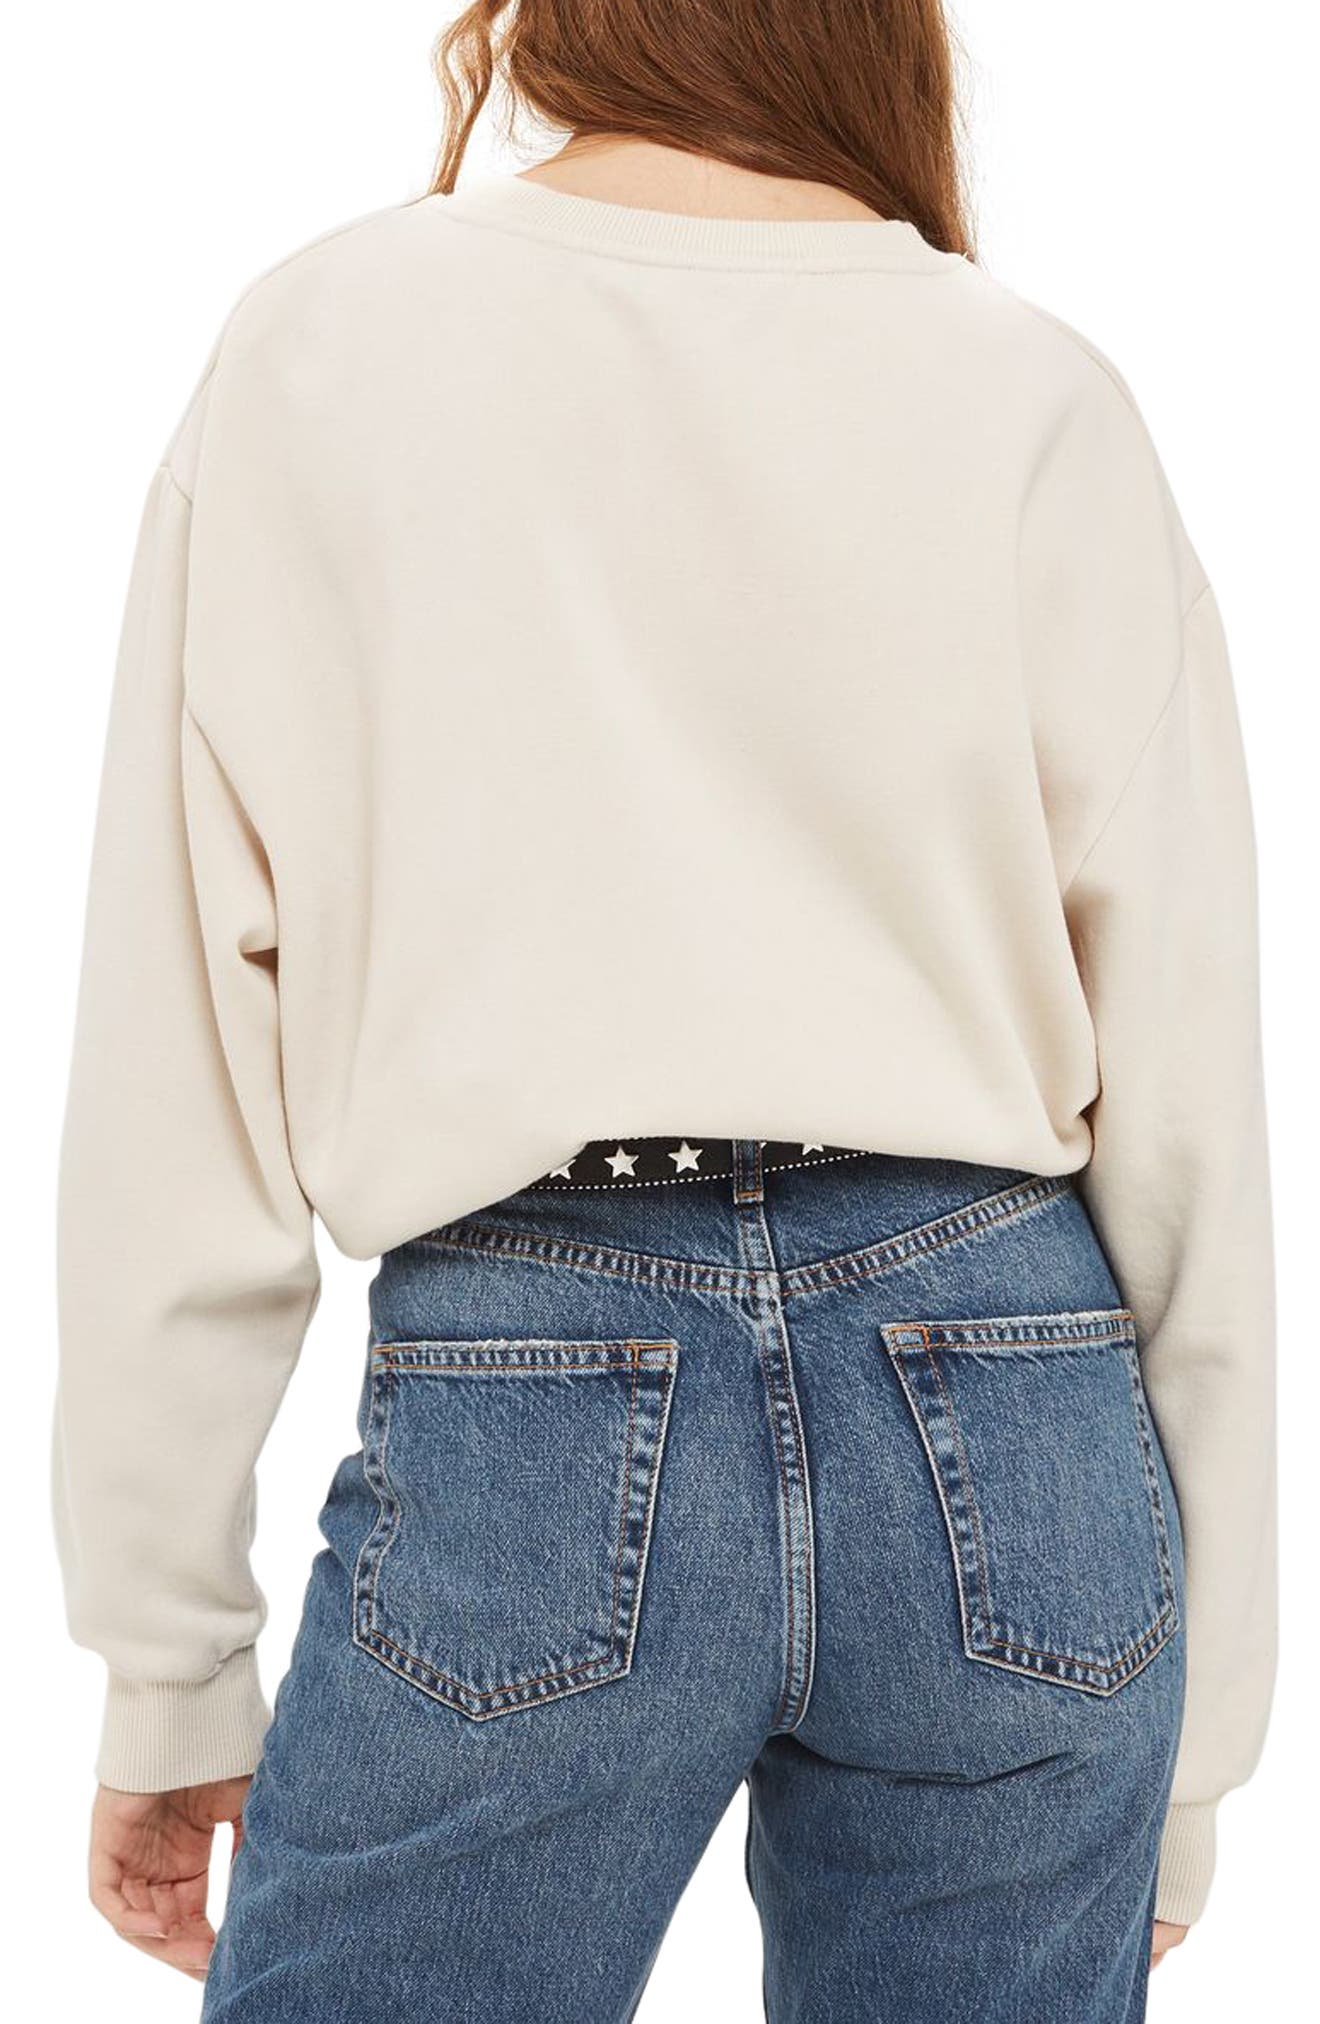 Alternate Image 3  - Topshop Sloppy Sweatshirt